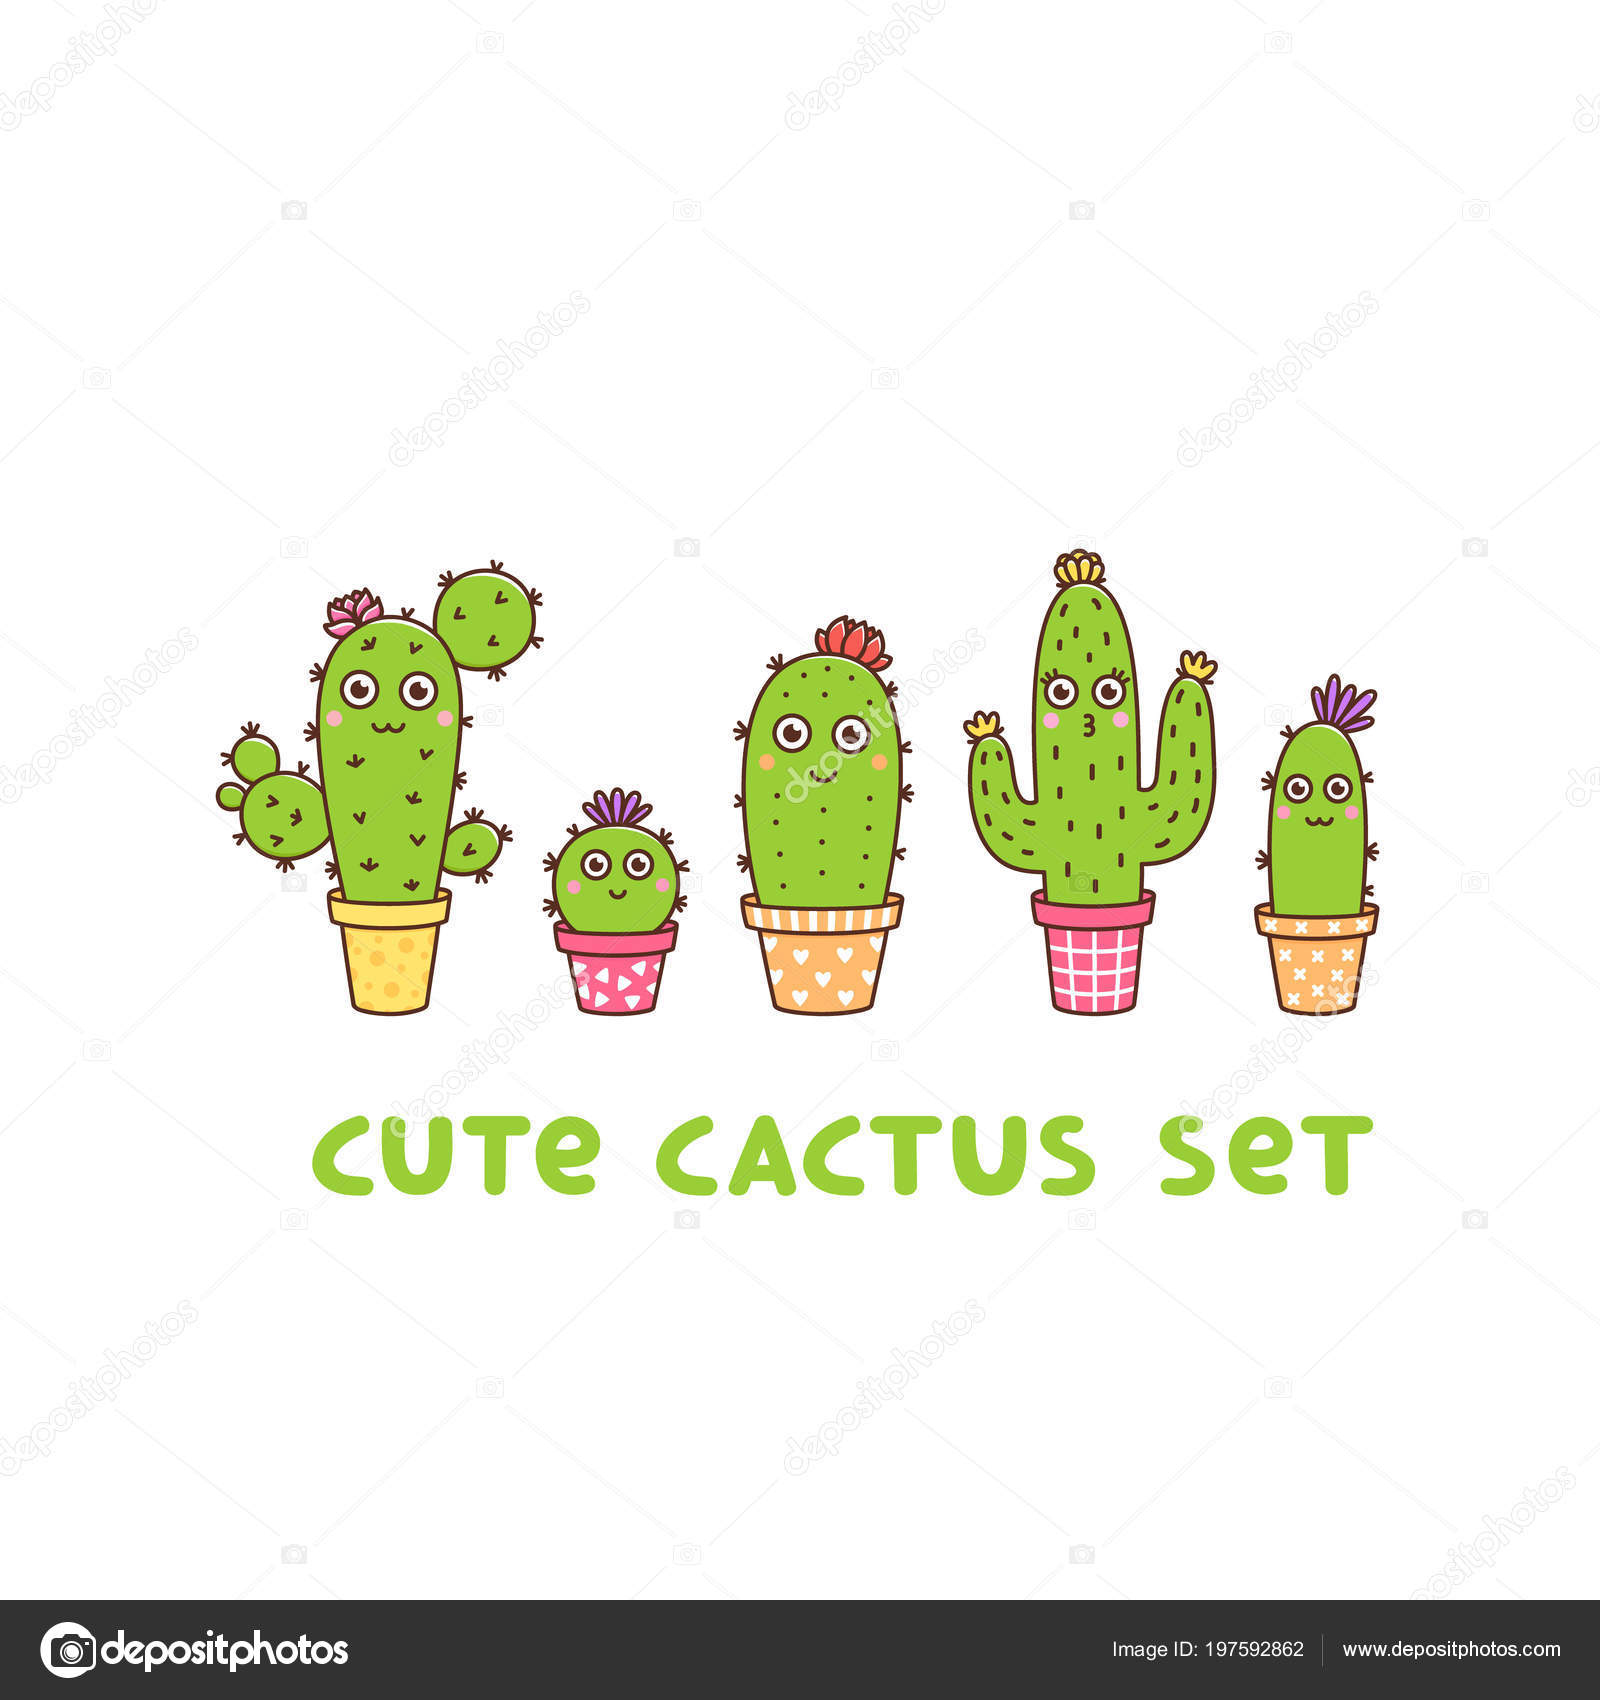 78a380c28e Cute flowering cactus set, in different colors pots, with flowers and  faces, on a white background. It can be used for sticker, patch, phone case,  poster, ...